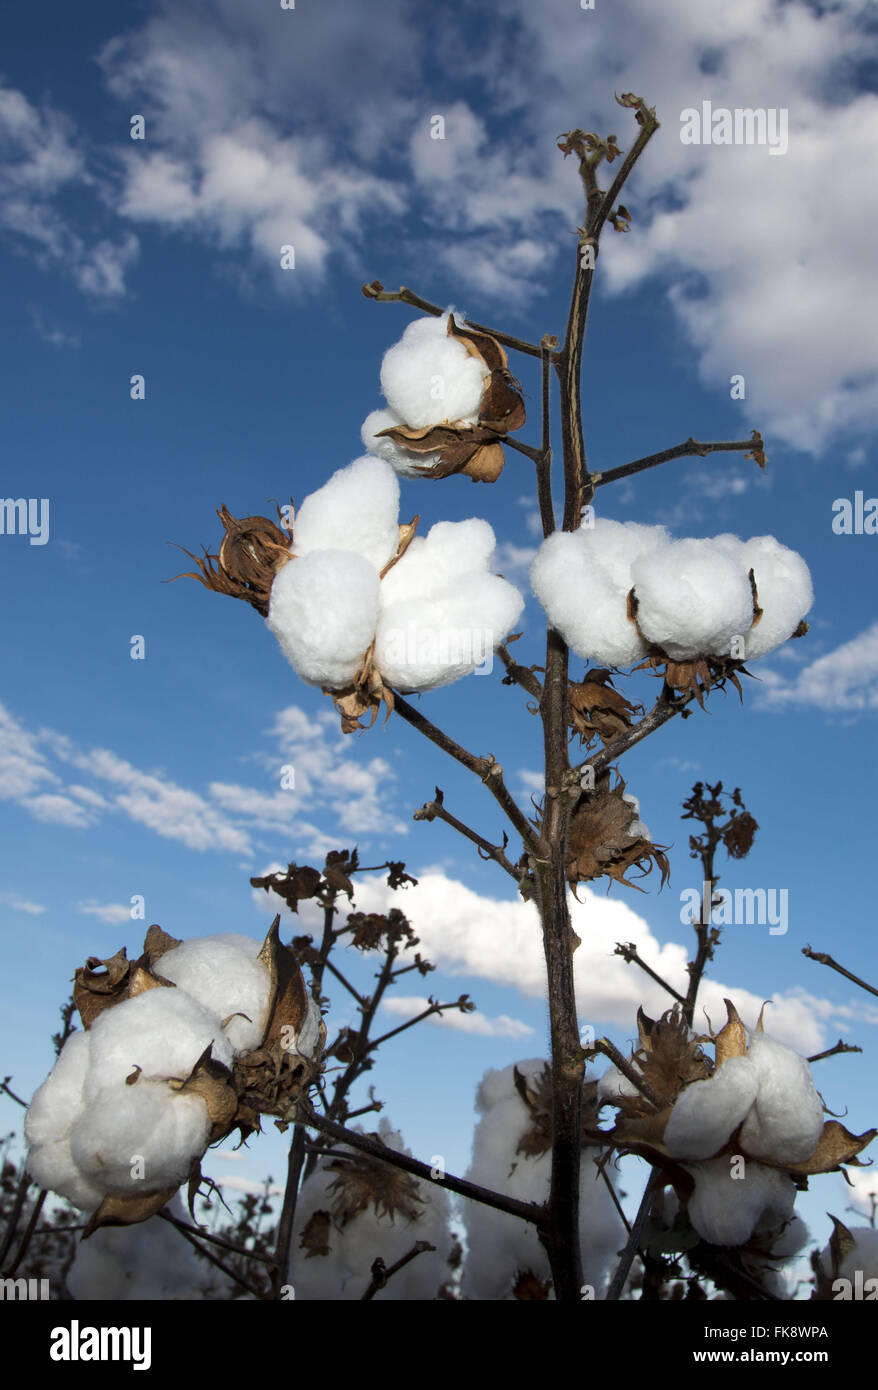 Cotton plantation in the countryside of Old Wheels district of the municipality of Sao Desiderio - Stock Image